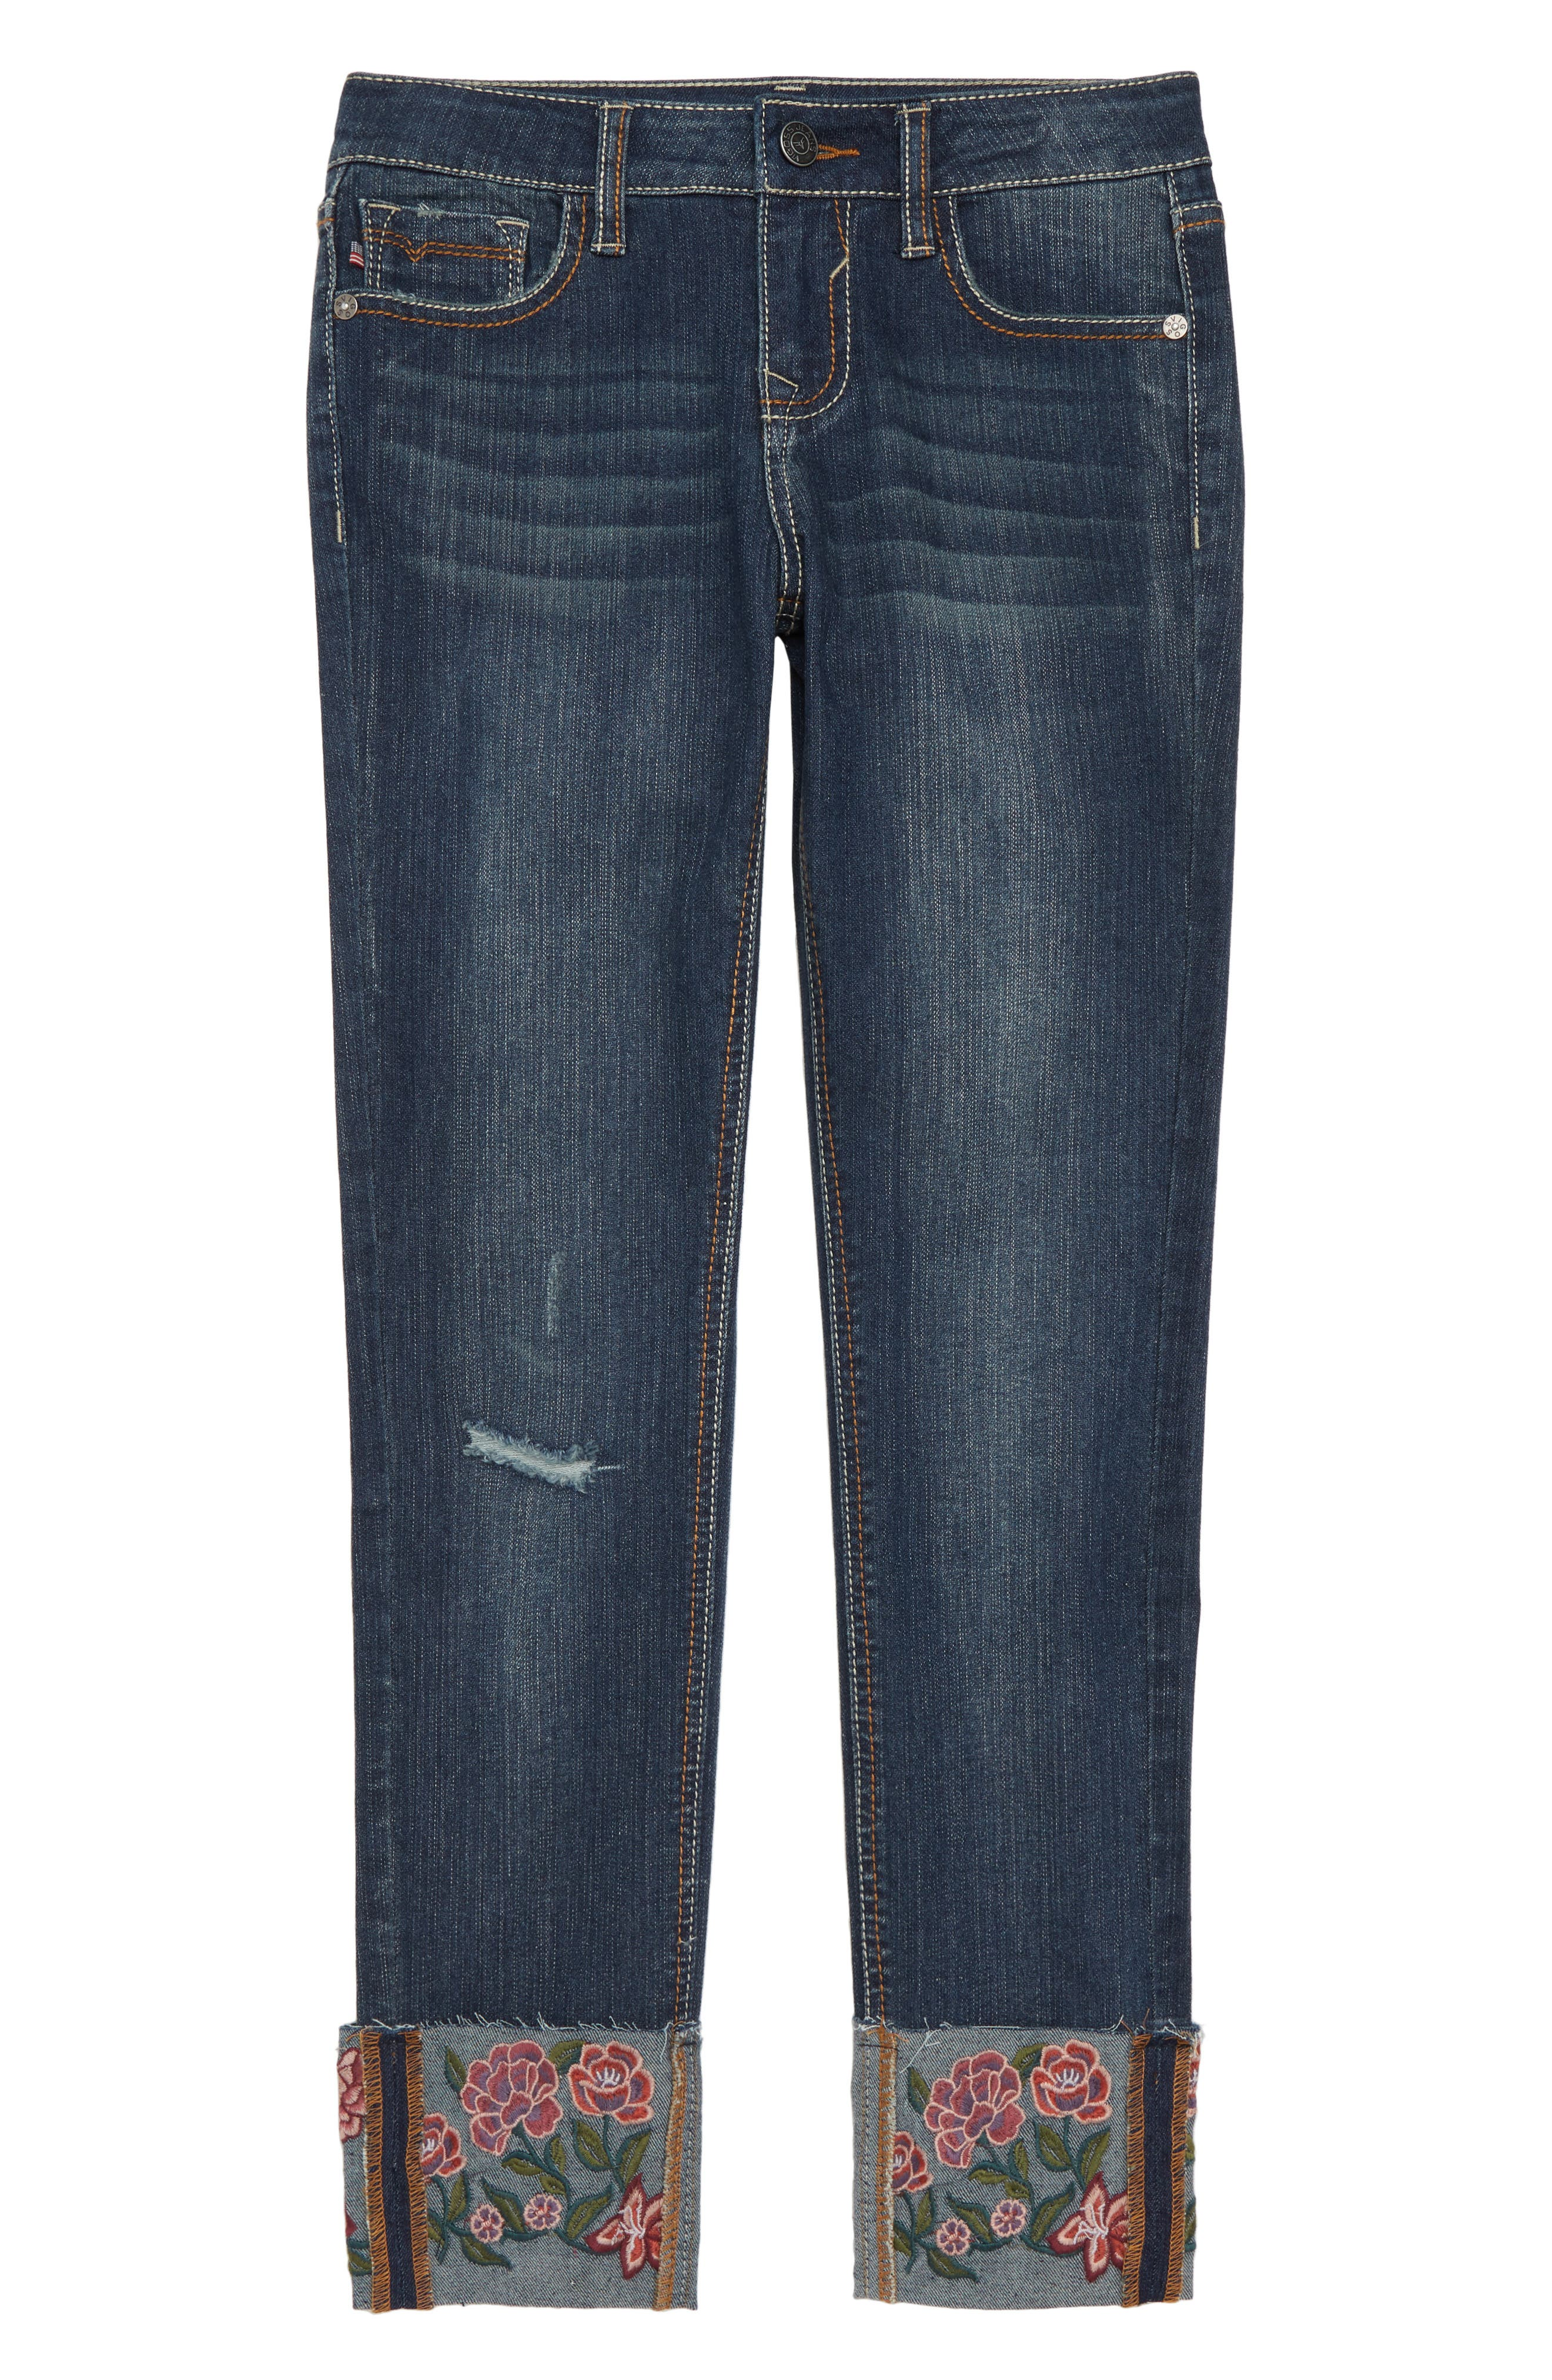 Embroidered Cuff Jeans,                             Main thumbnail 1, color,                             DARK MIDNIGHT/ DMN